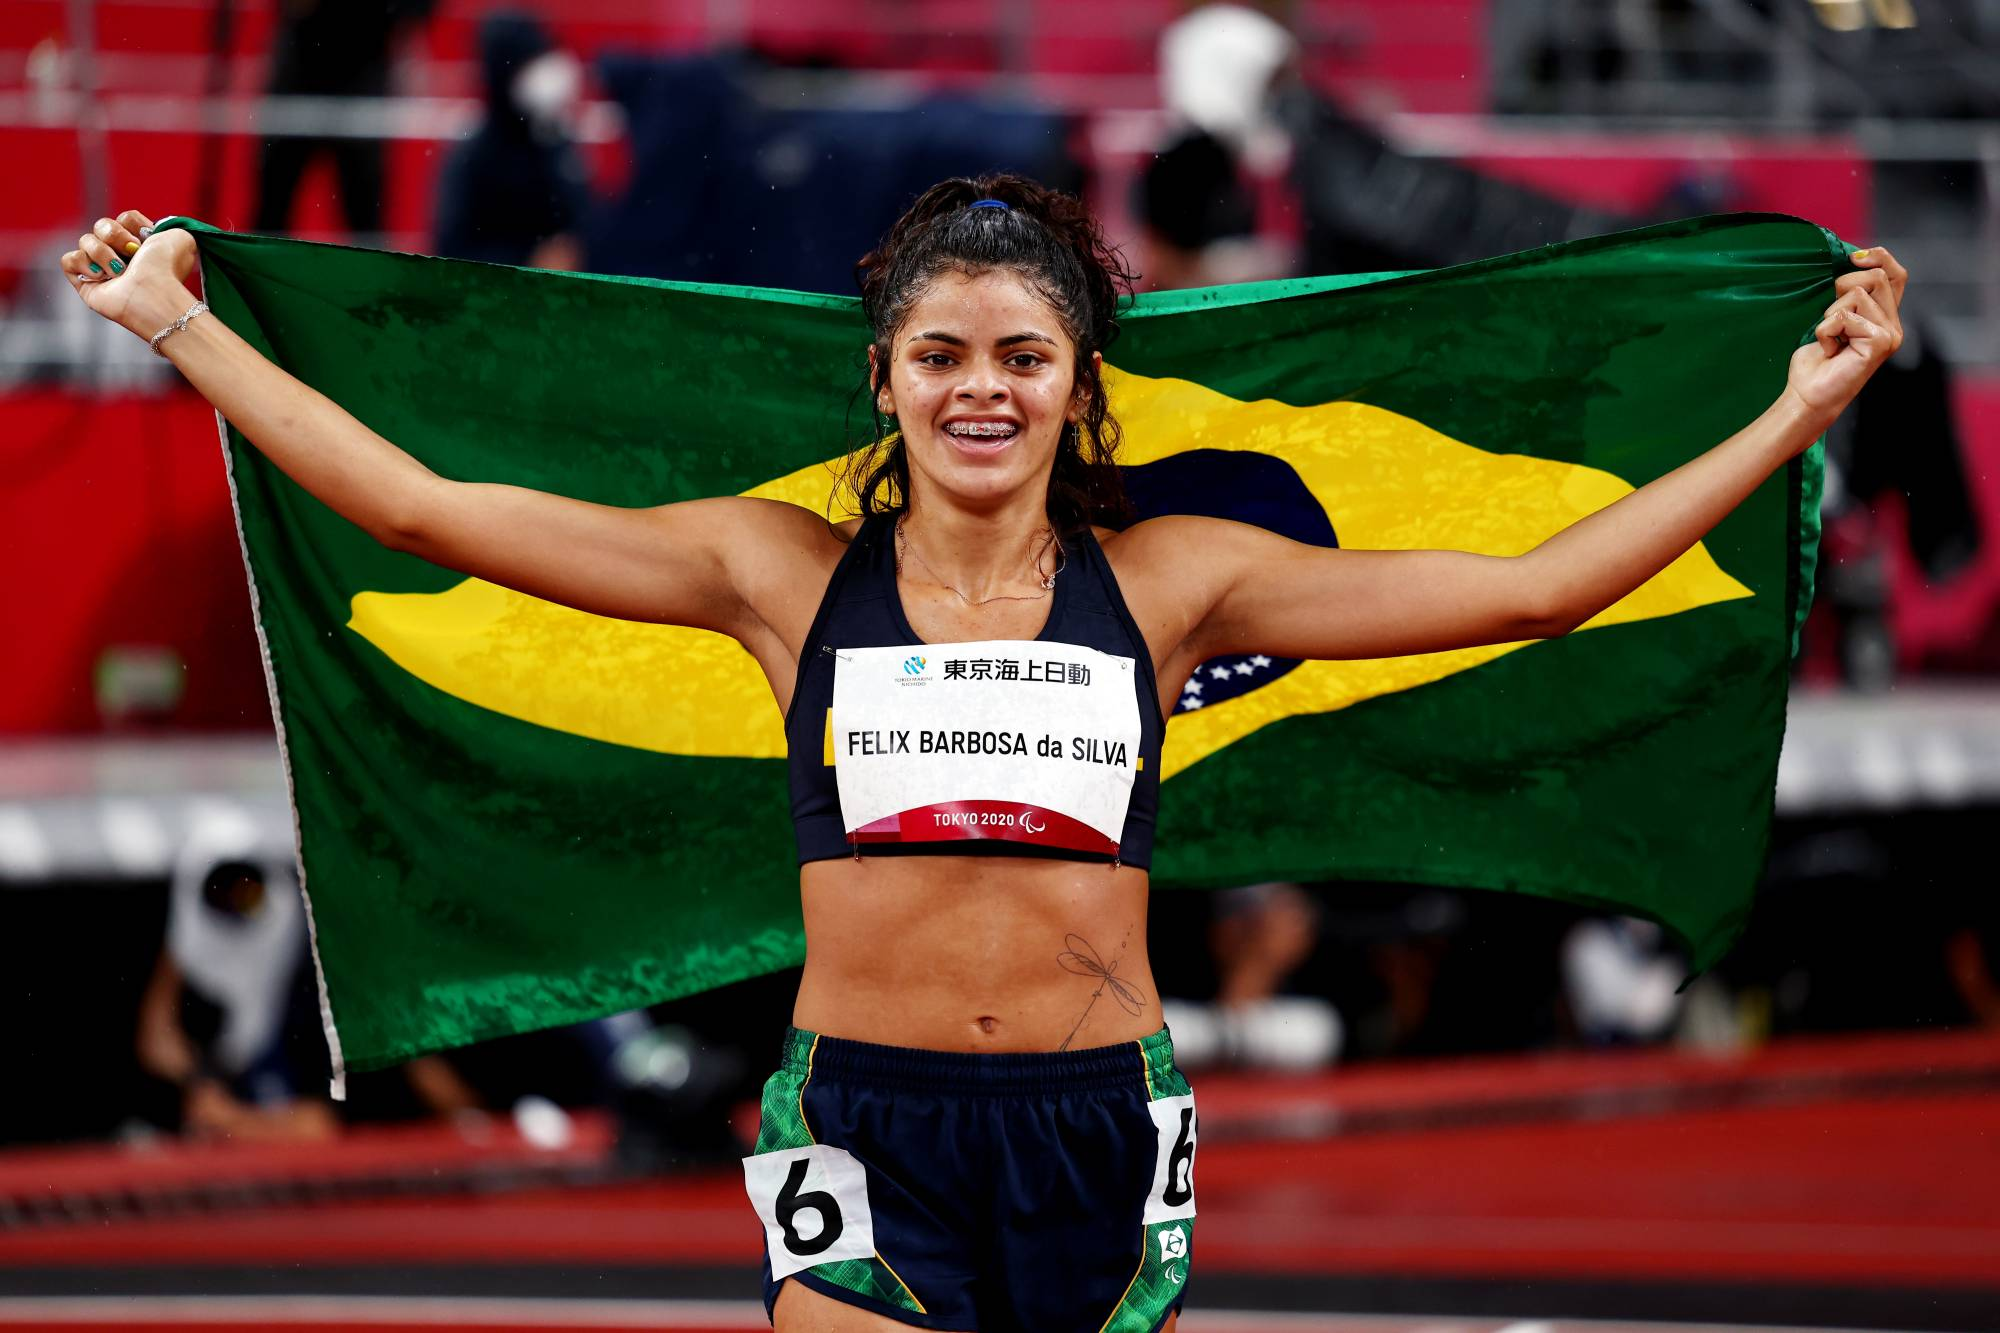 Jardenia Felix Barbosa Da Silva of Brazil celebrates after finishing third in the women's T20 400 meters. In Tokyo, only around 120 of the 4,400 athletes competing are classed as having an intellectual impairment.   REUTERS